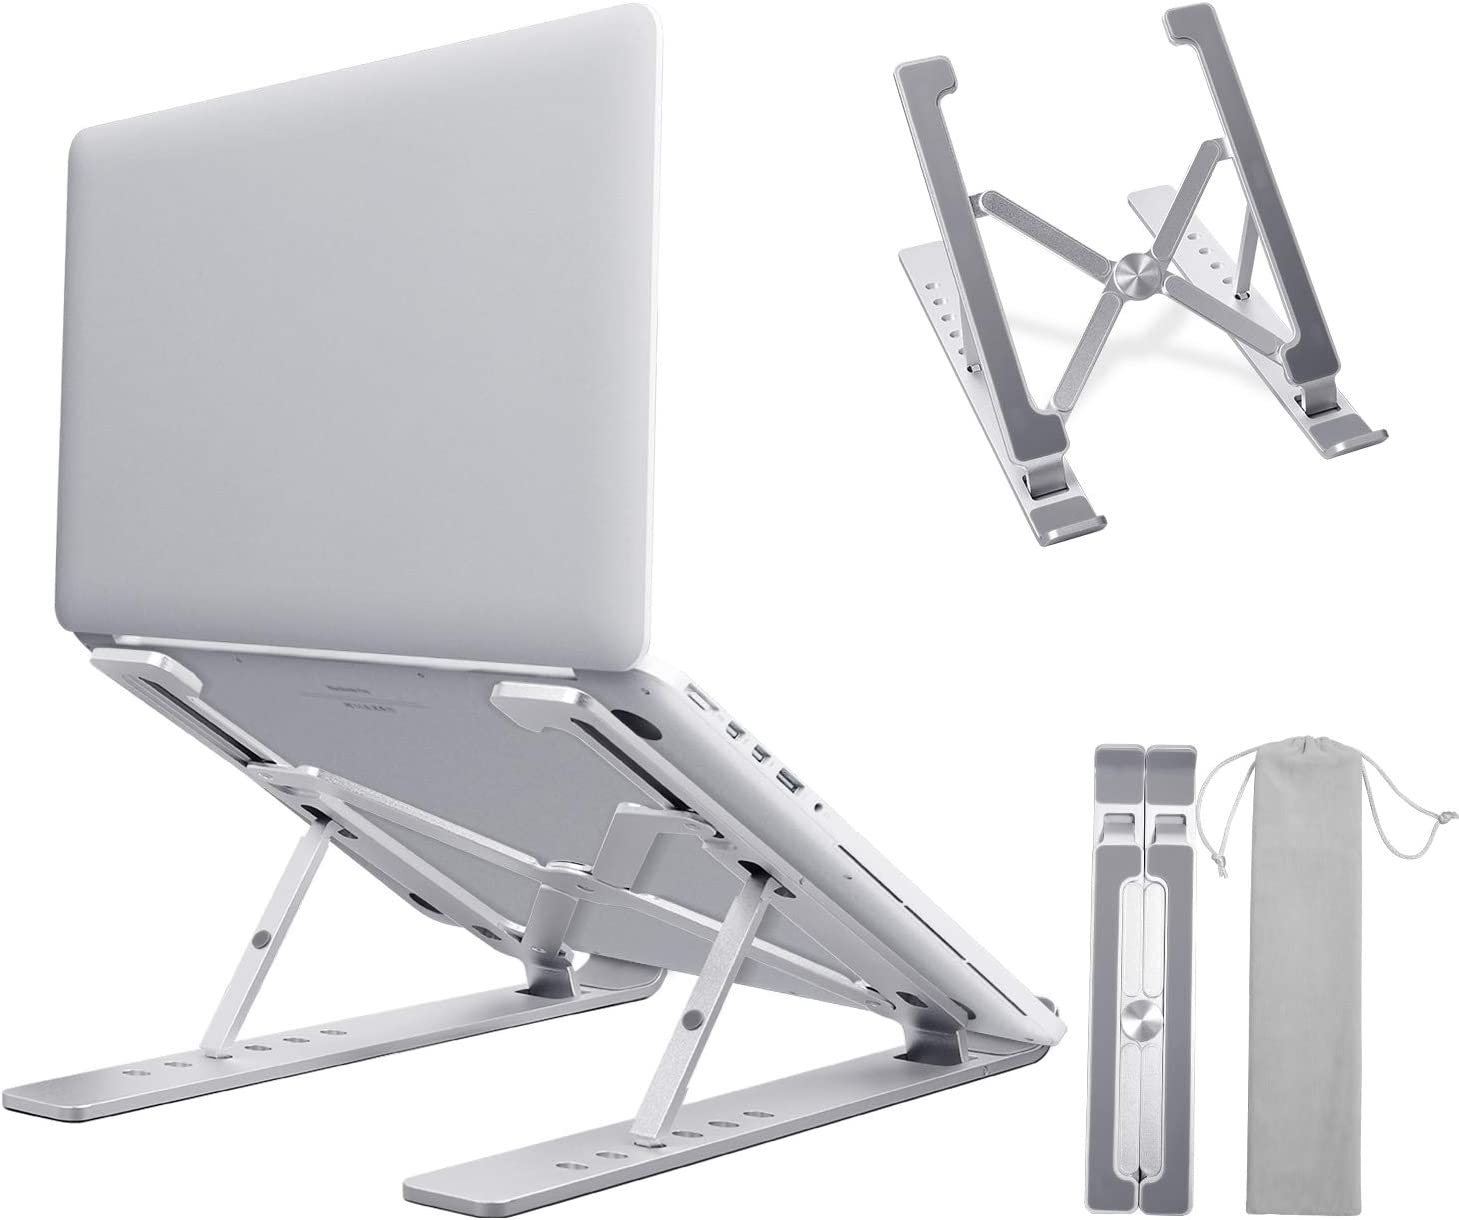 "Laptop Stand, LEYOSOV Portable Foldable Tablet Stand, Aluminum 6 Angles Adjustable Notebook Stand, Ergonomic, Lightweight and Sturdy, Compatible for MacBook Air Pro, Dell, More 10-17"" Laptops"